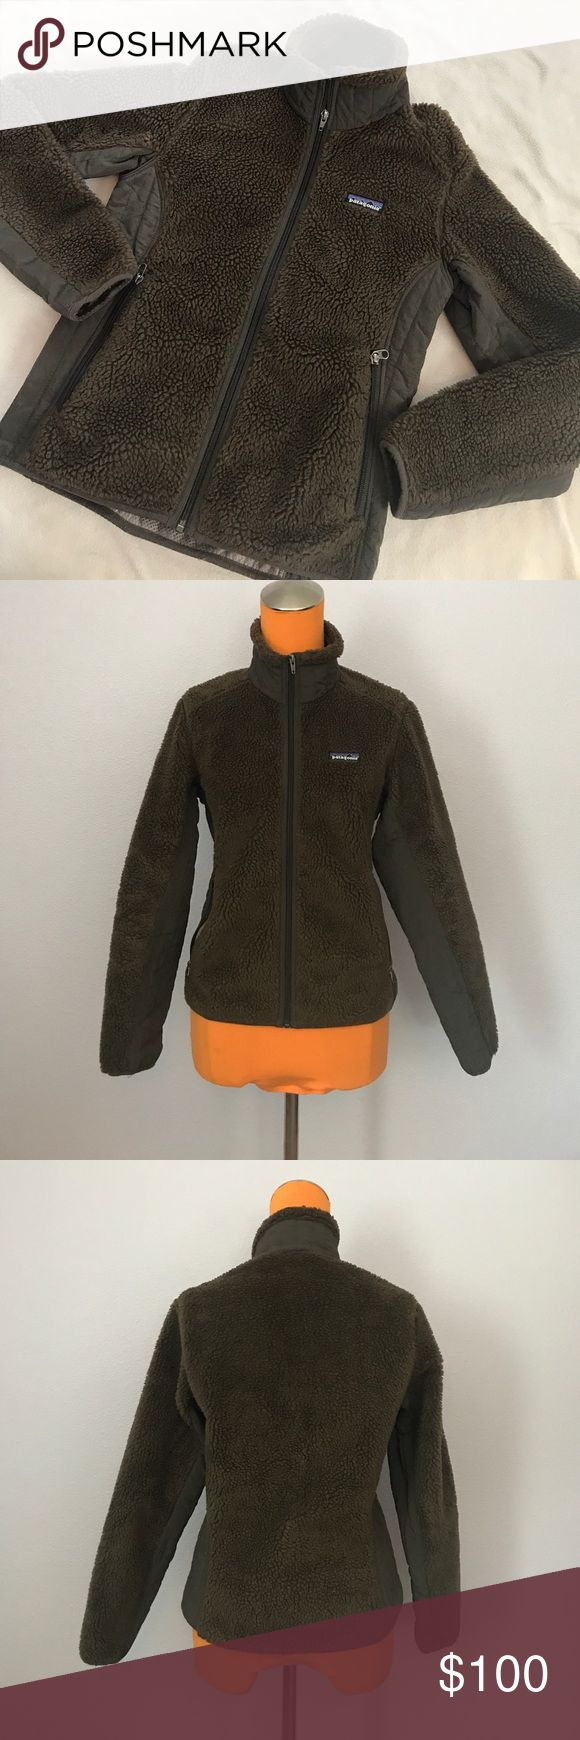 "Patagonia Chocolate Brown Los Gatos Fuzzy Jacket 24"" length 17.5"" armpit to armpit. Zips up the front. Los Gatos style. Jacket with front zipper pockets. Gray brown lining on side and under arms. Mesh like lining inside and inside pockets. Model is wearing same style just different color. Excellent condition. Bundle 2+ items for a discount Patagonia Jackets & Coats"